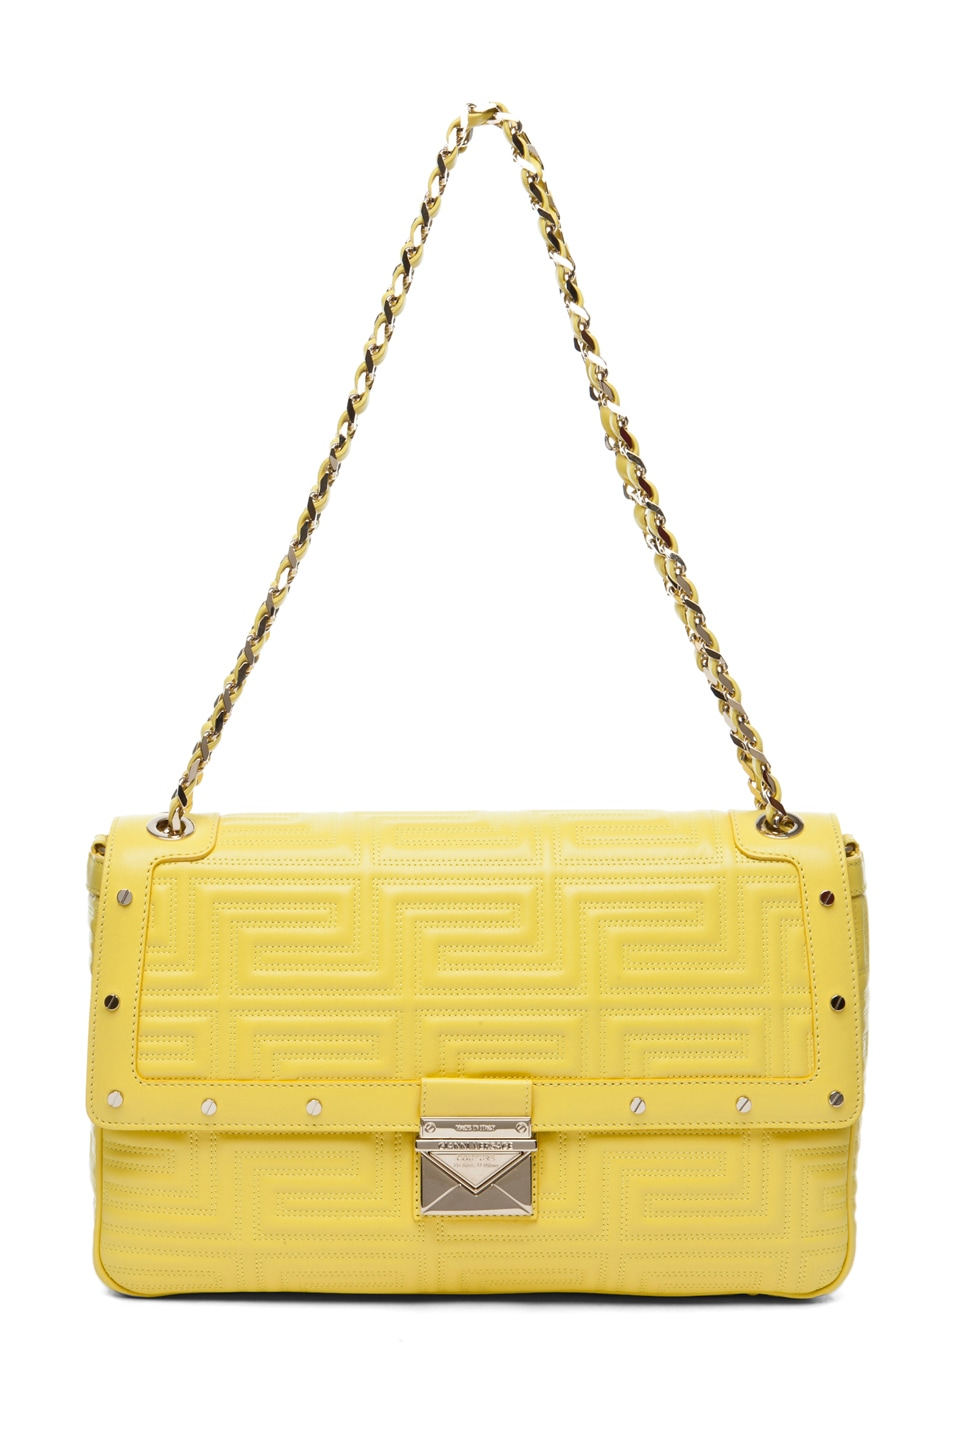 Image 1 of VERSACE Lamb Leather Handbag in Yellow